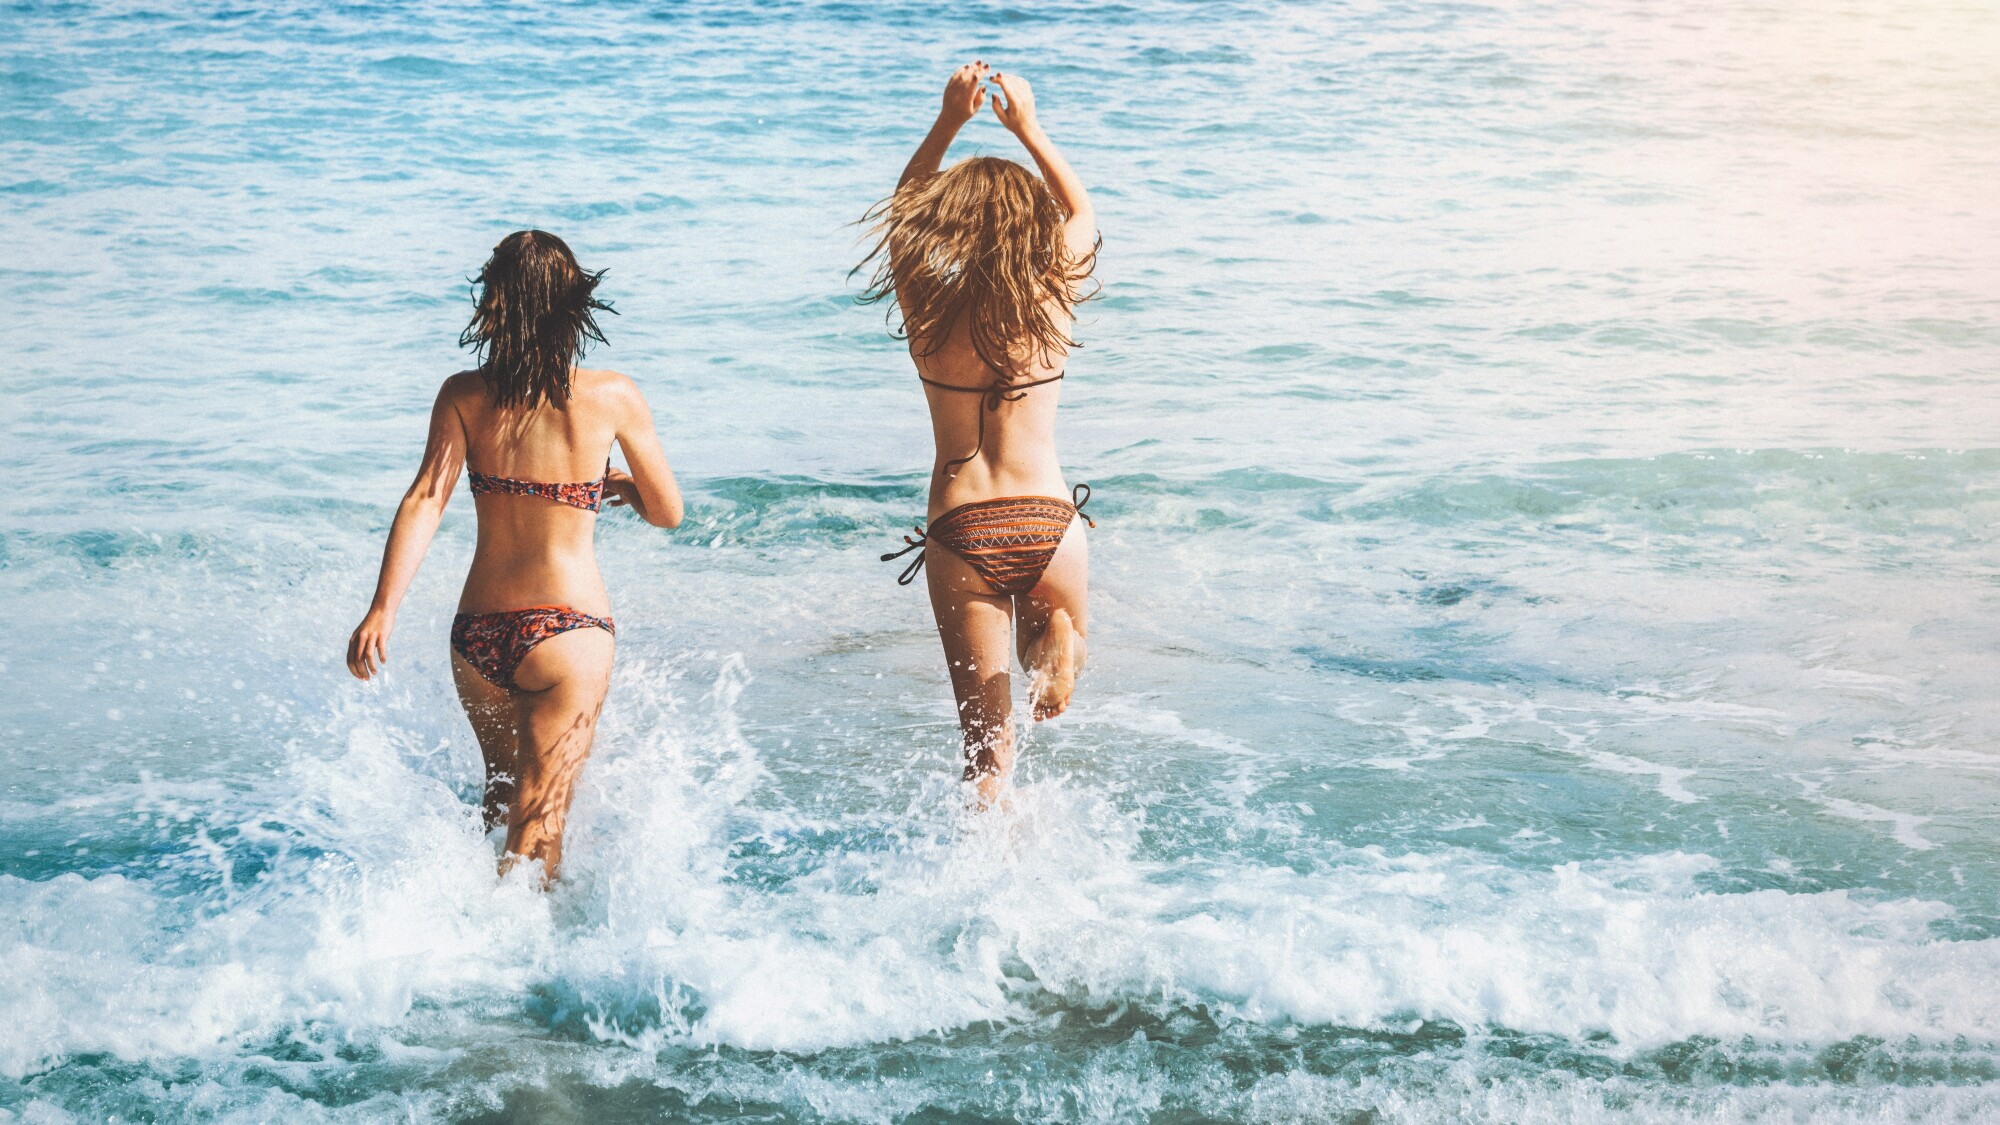 Life's a Beach: 5 Safety Tips for Ocean Swimming